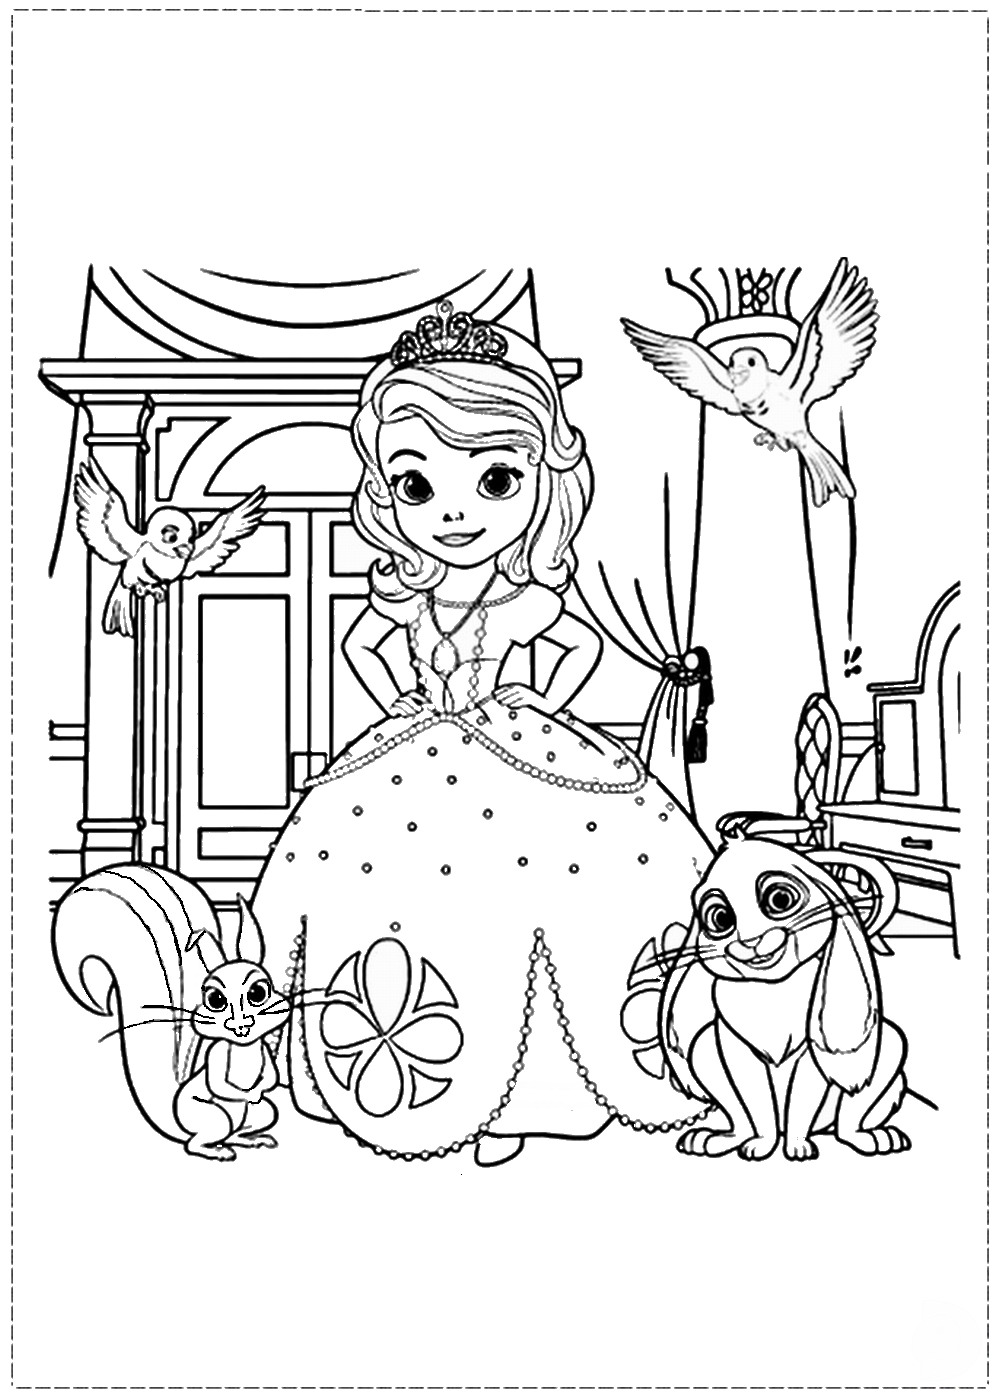 sofia the first coloring pages free 27 sofia the first coloring book in 2020 cartoon free coloring first sofia pages the